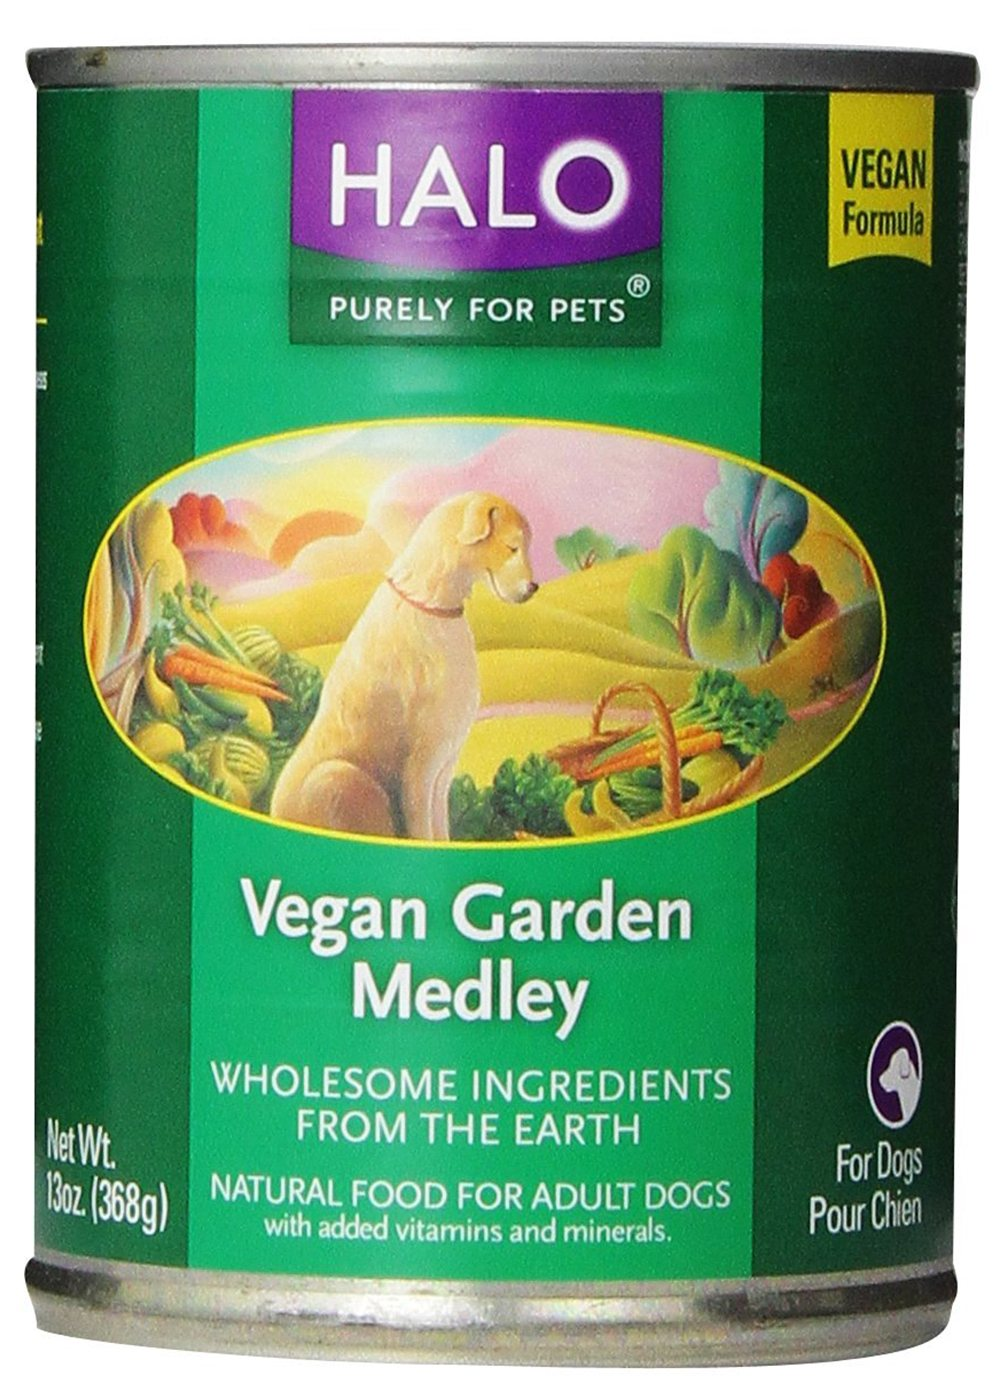 Halo Vegan Garden 12-Pack Medley Stew for Dogs